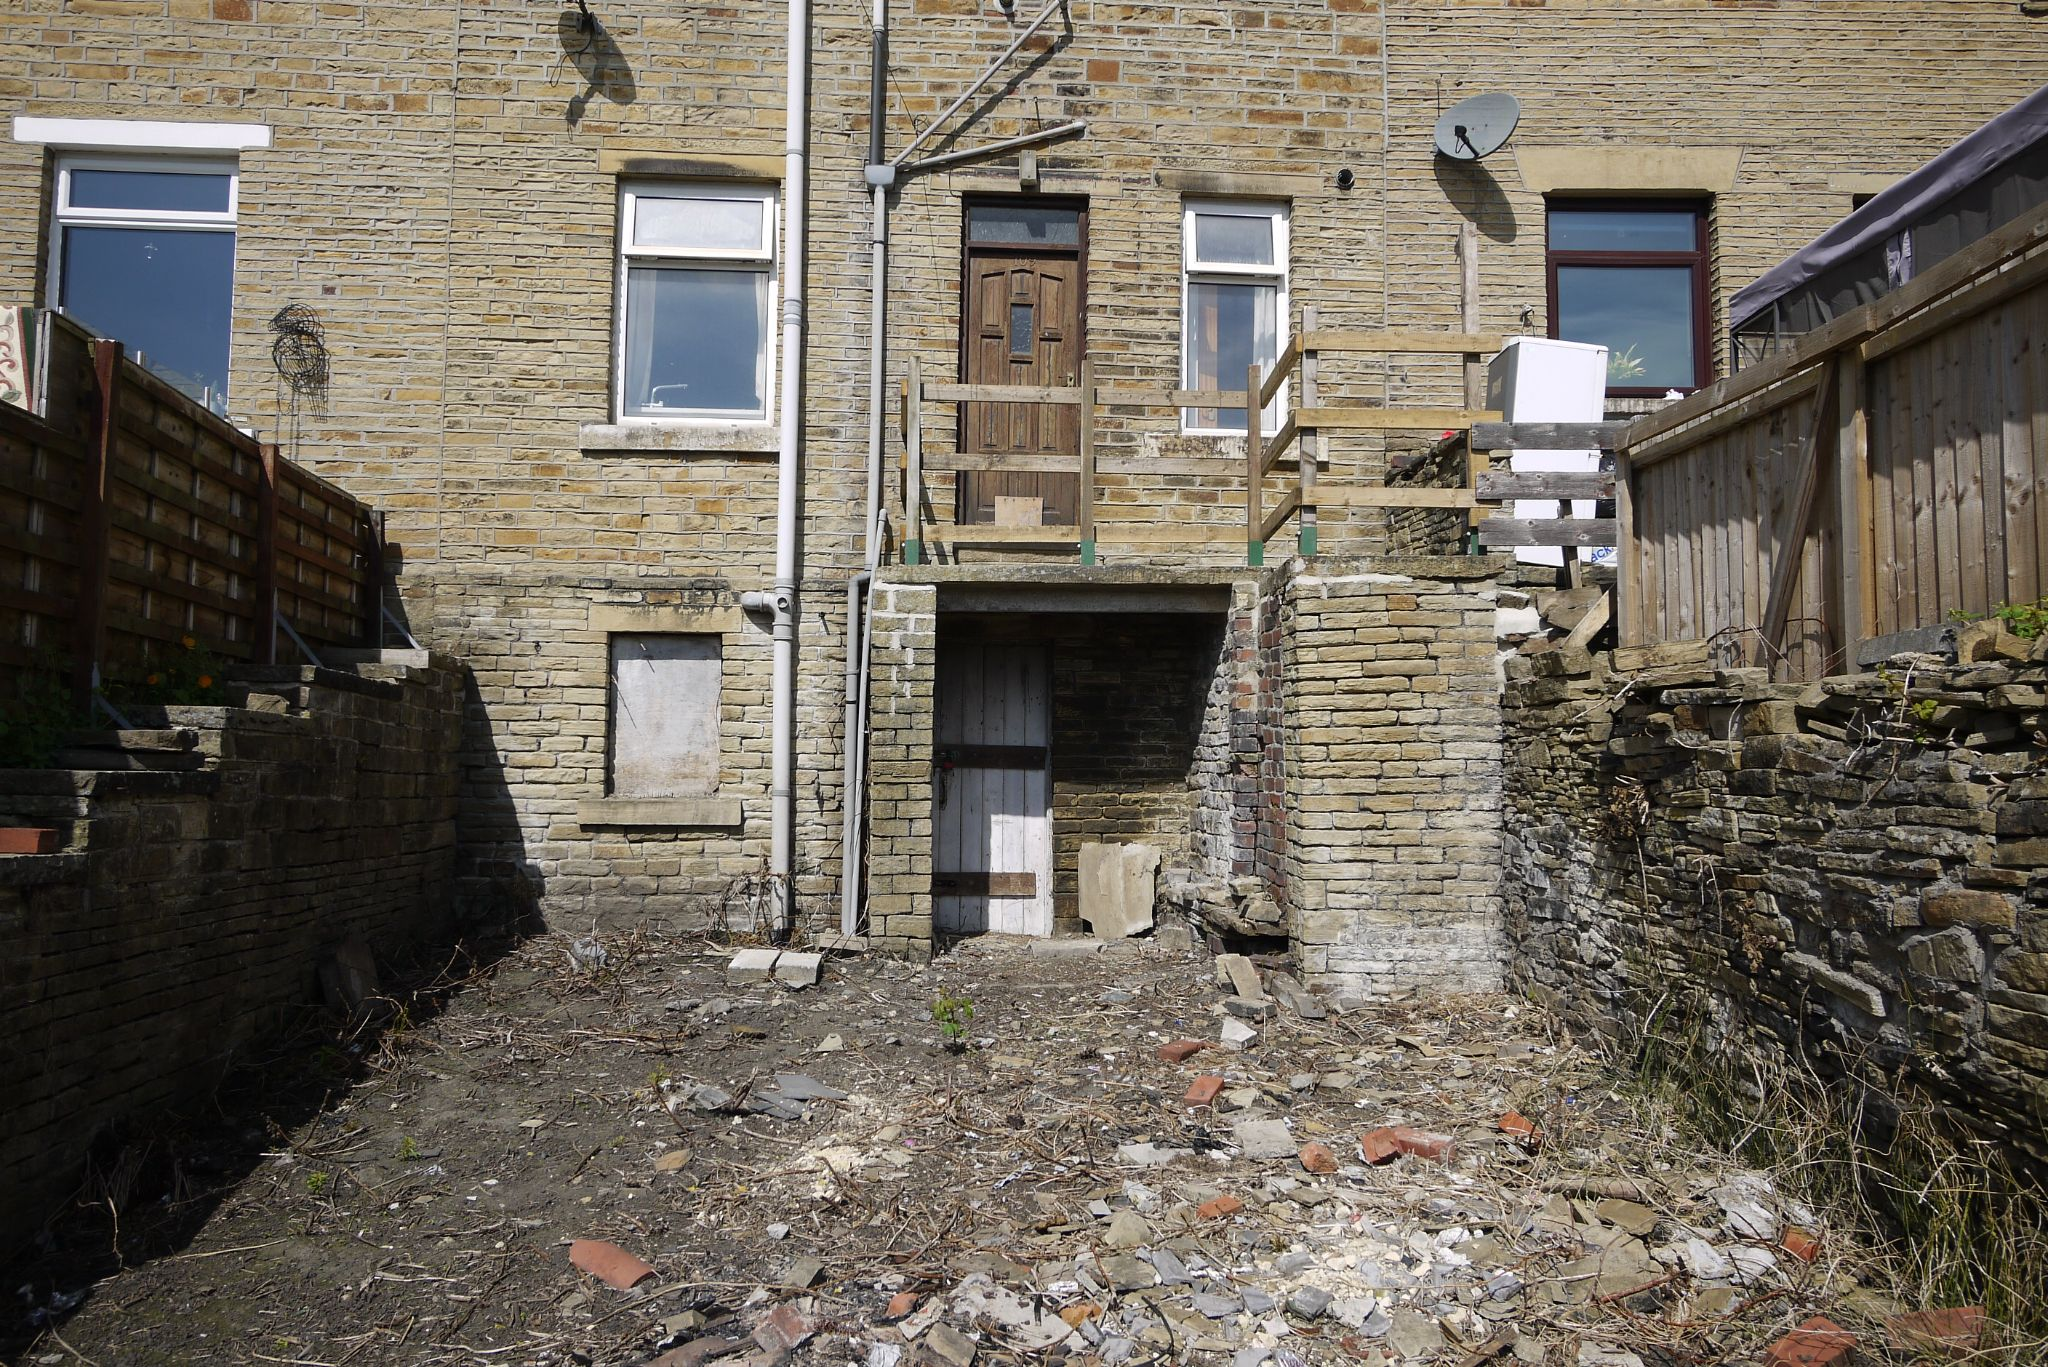 1 bedroom undefined house SSTC in Brighouse - Photograph 1.